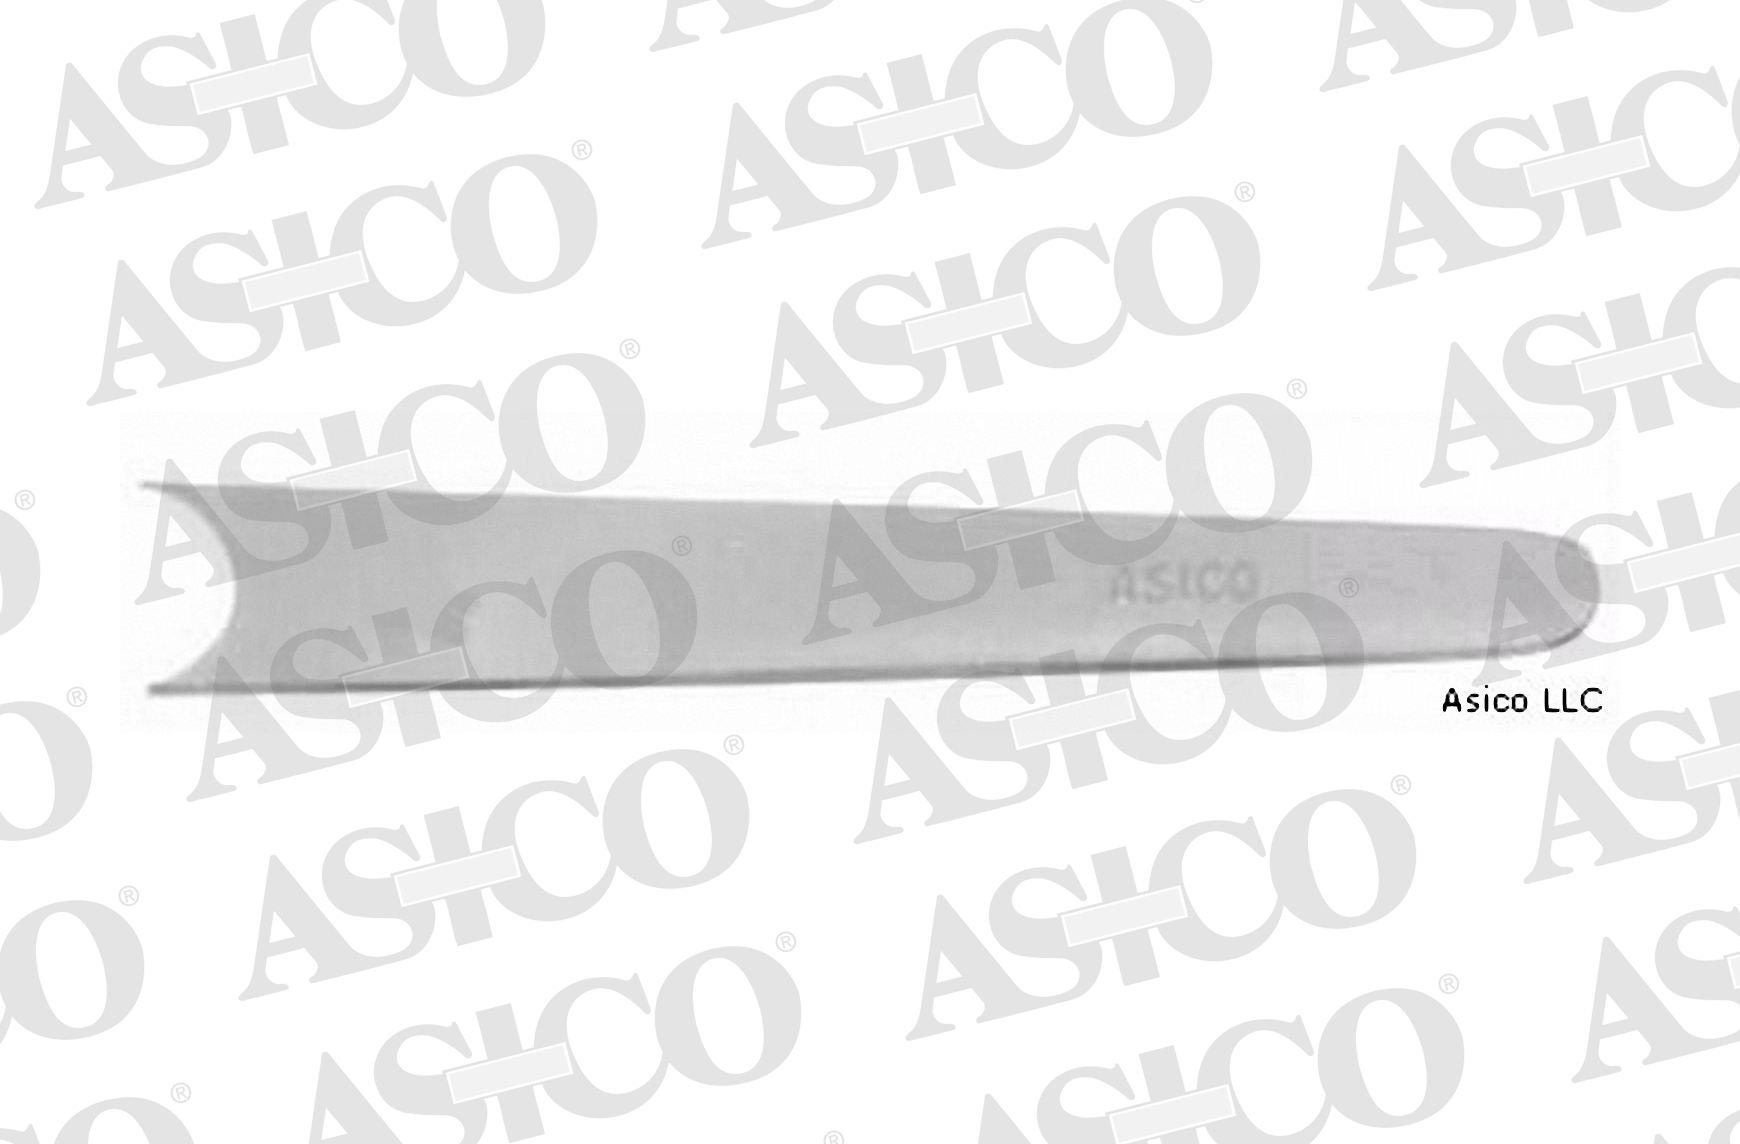 Galand Incision Marker: 3.0mm